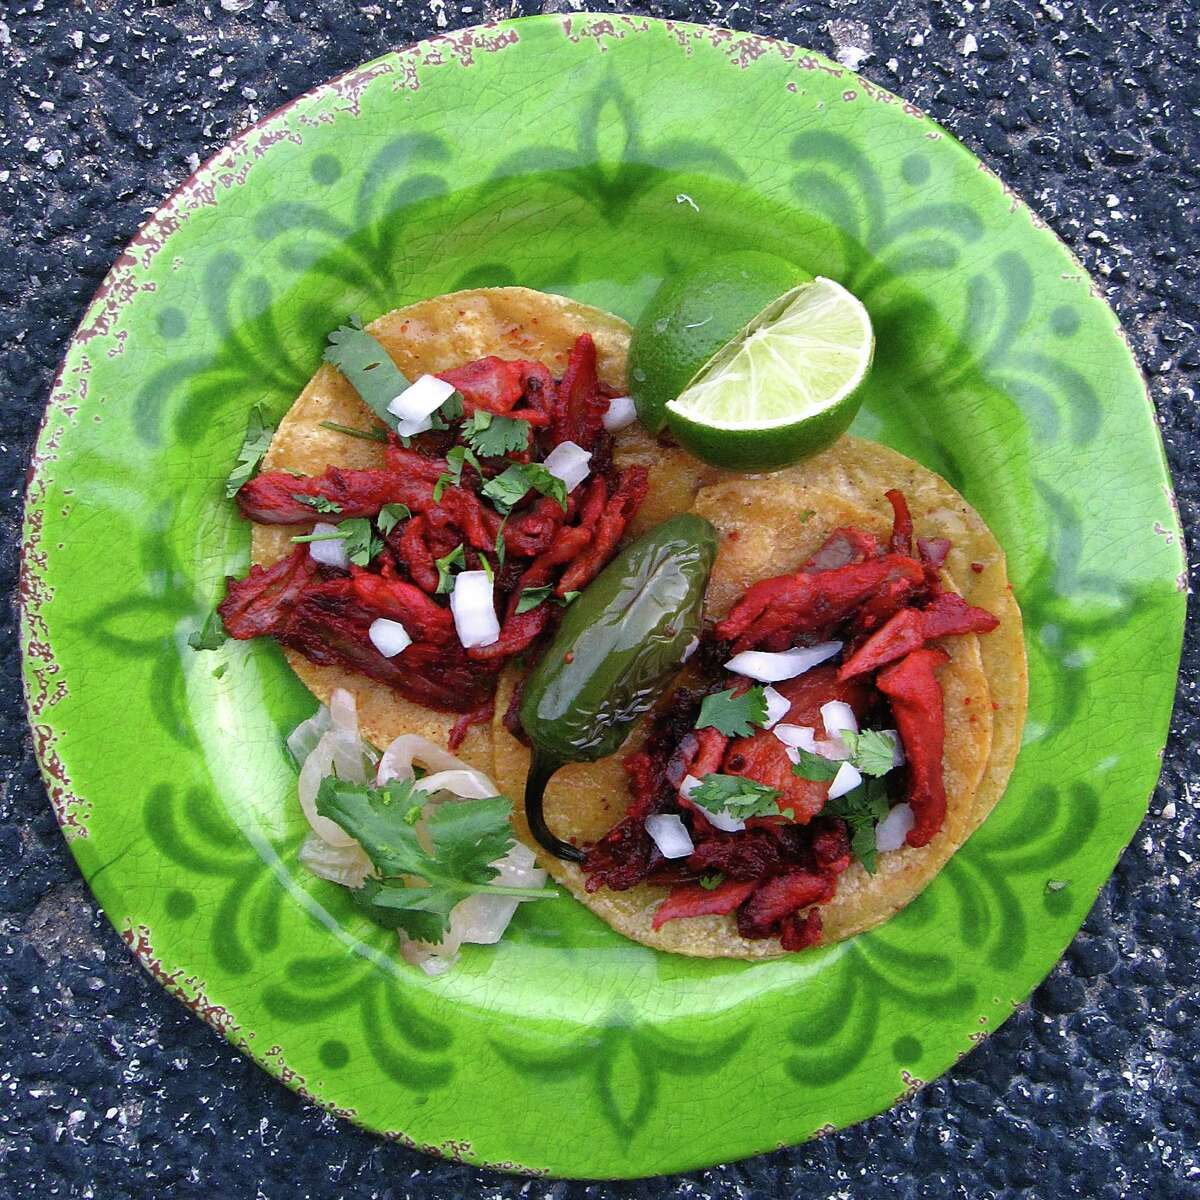 Al pastor mini-tacos on doubled-up corn tortillas from Tacos Beto's.